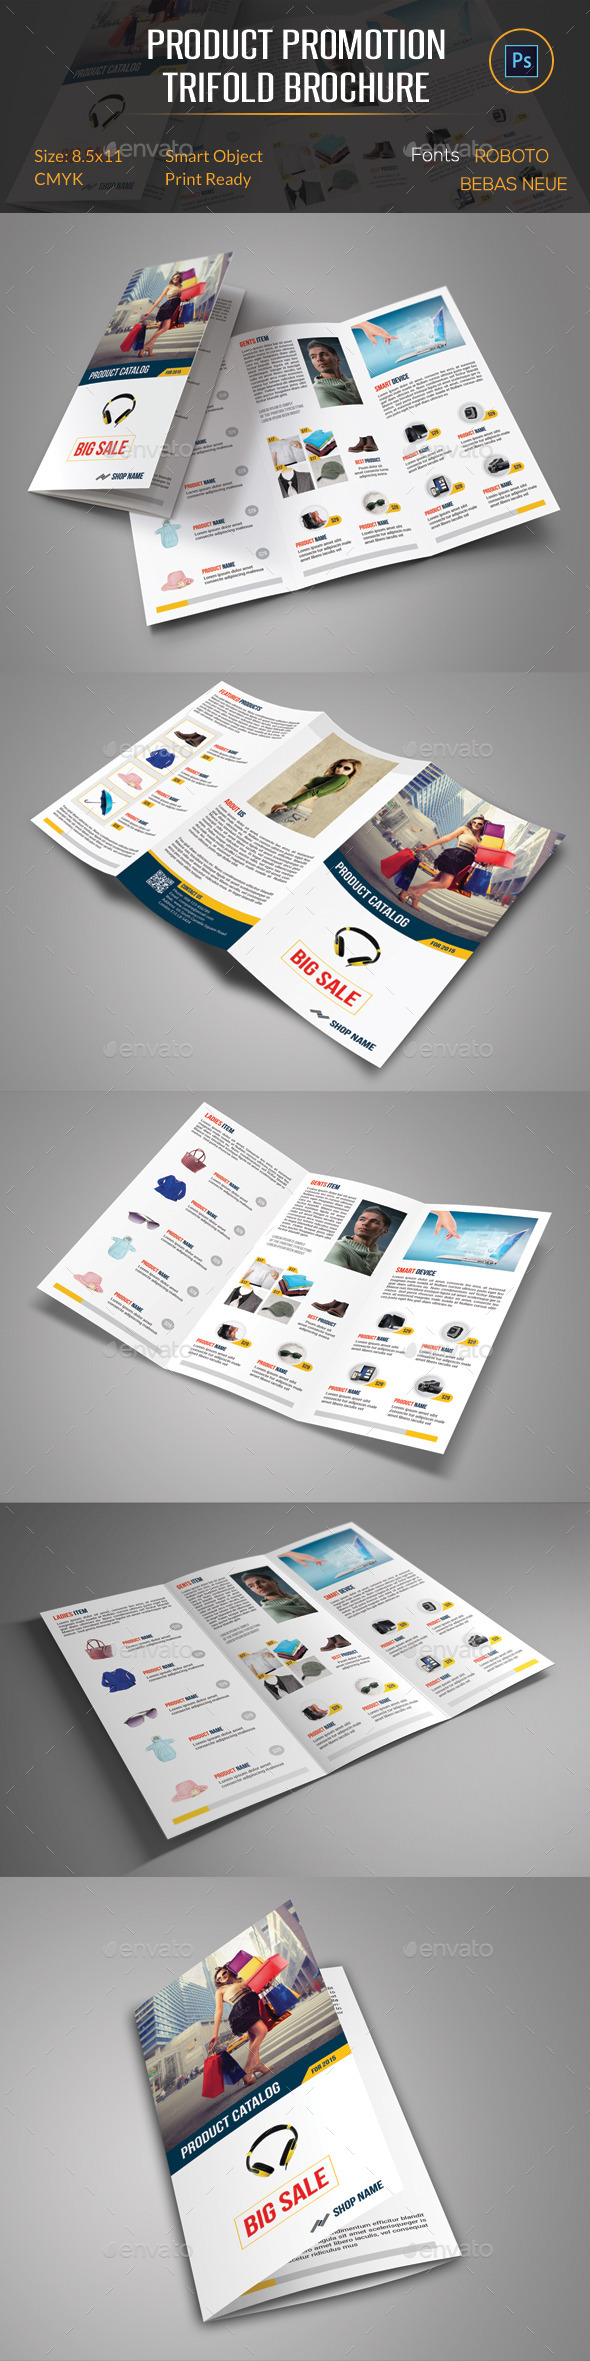 Product Promotion Trifold Brochure - Catalogs Brochures